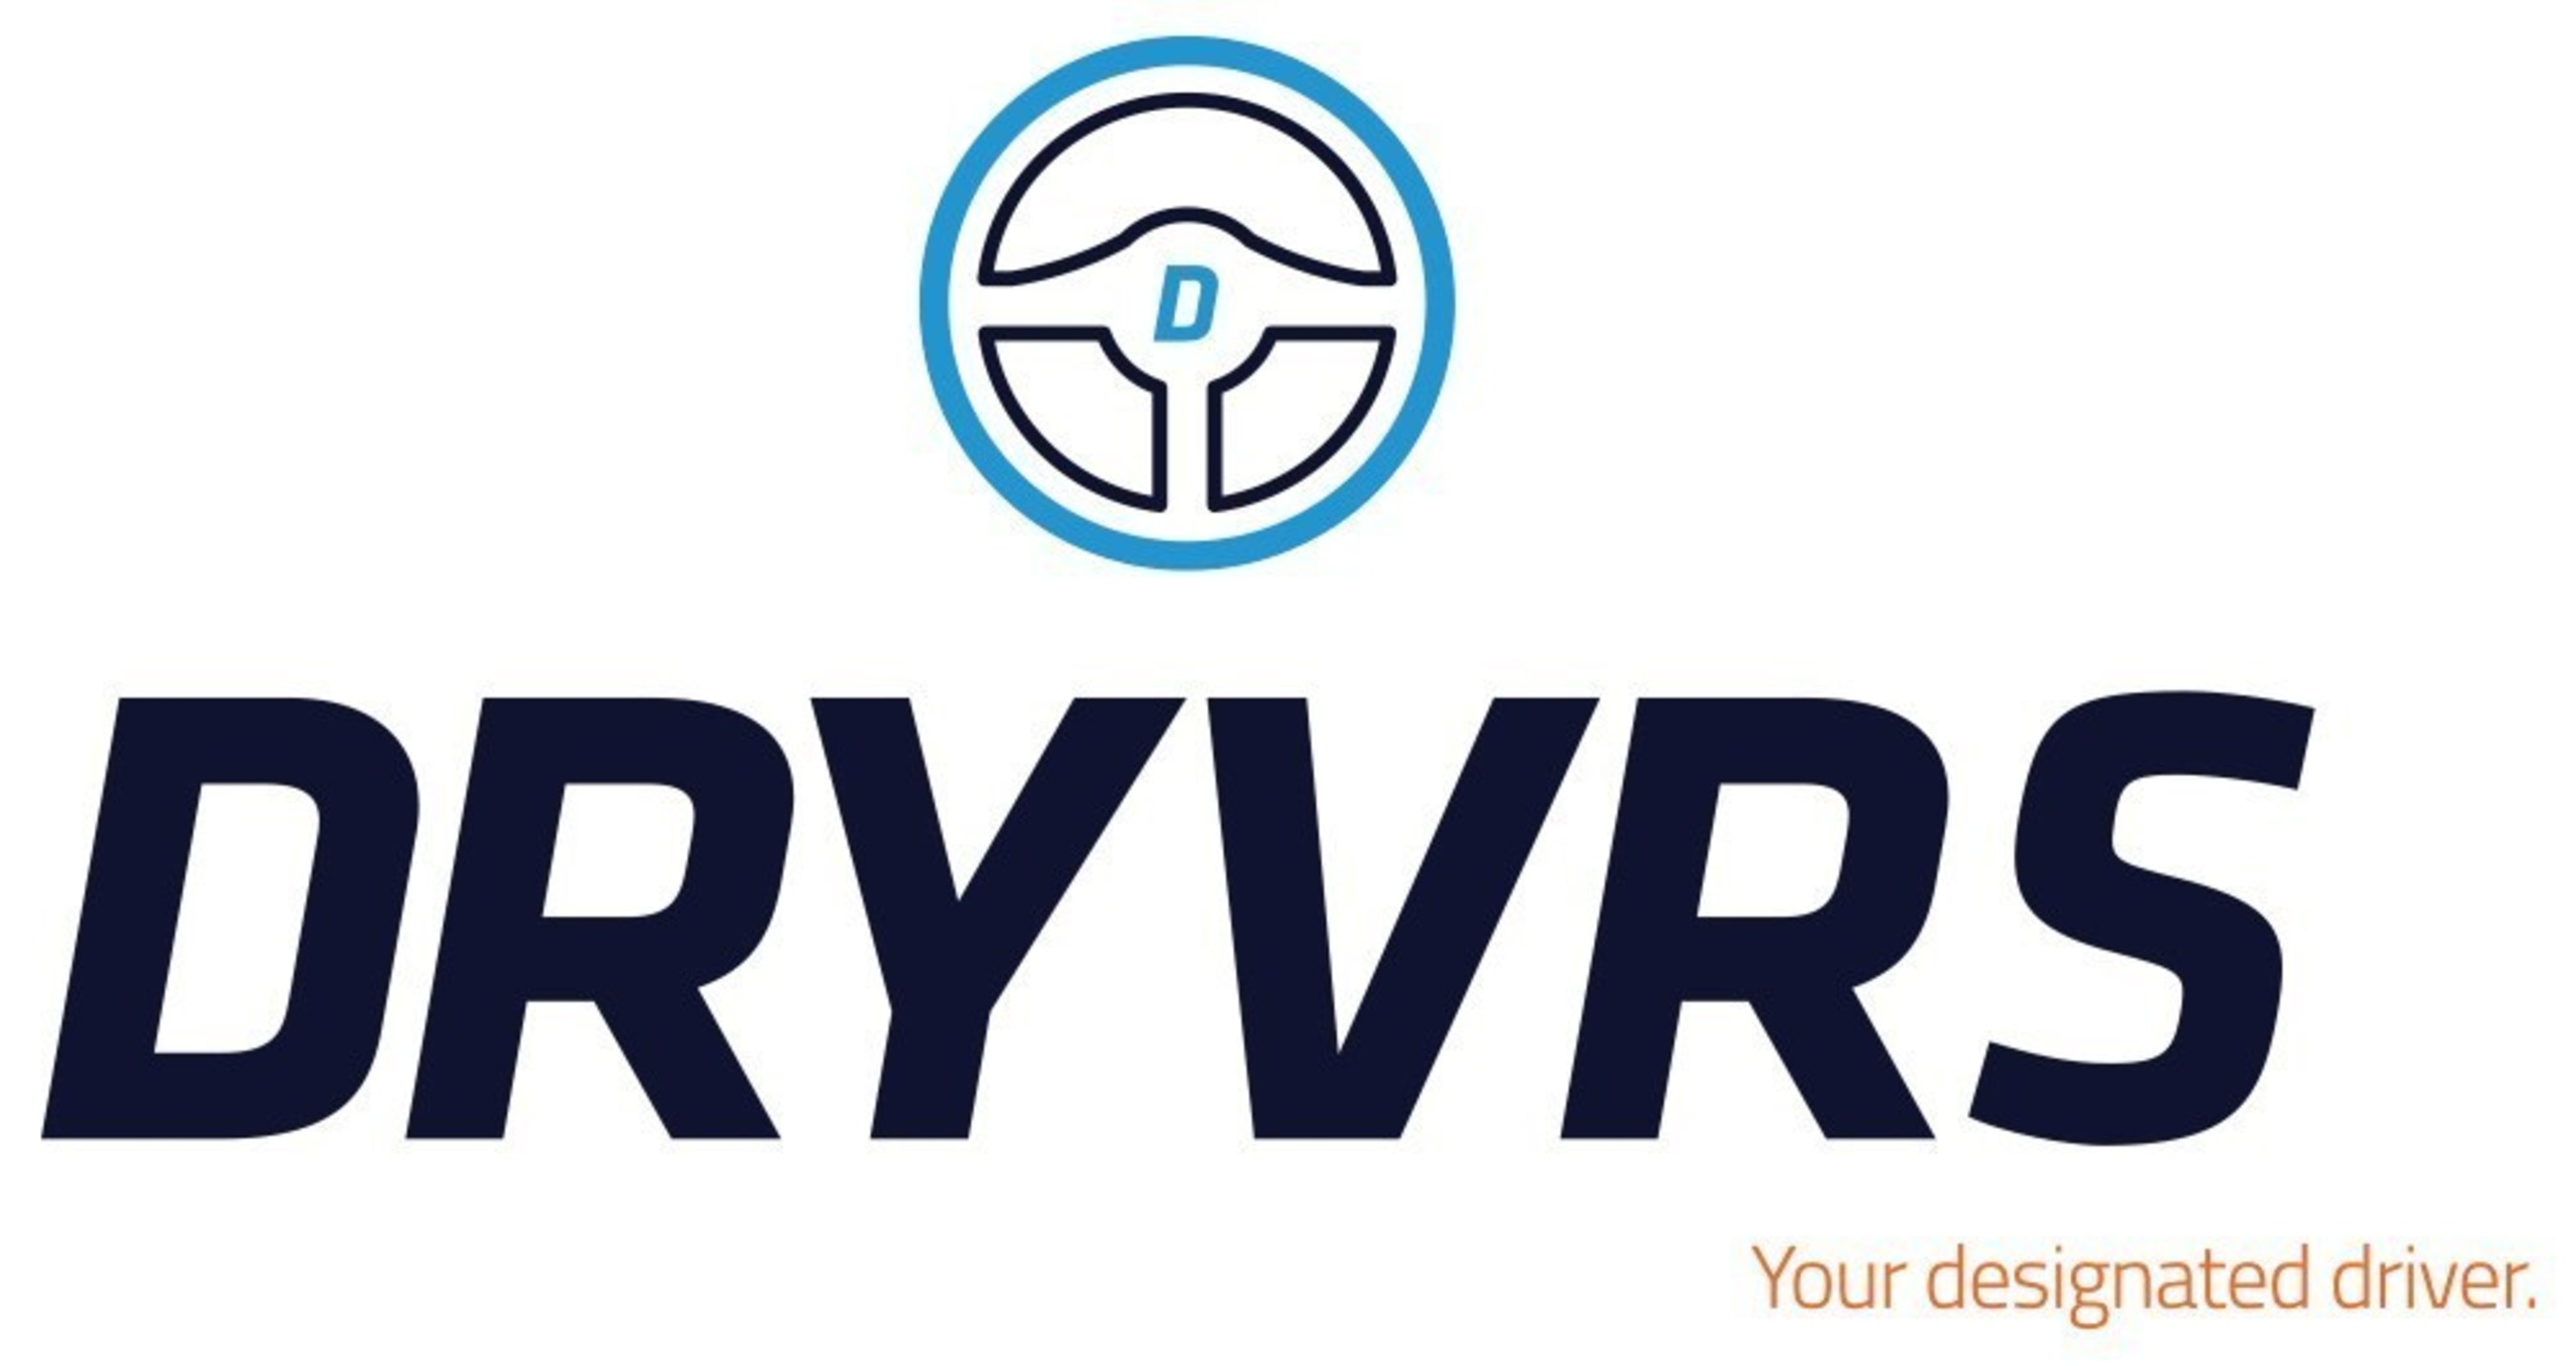 Need a Designated Driver? Now, There's an App for that - DRYVRS